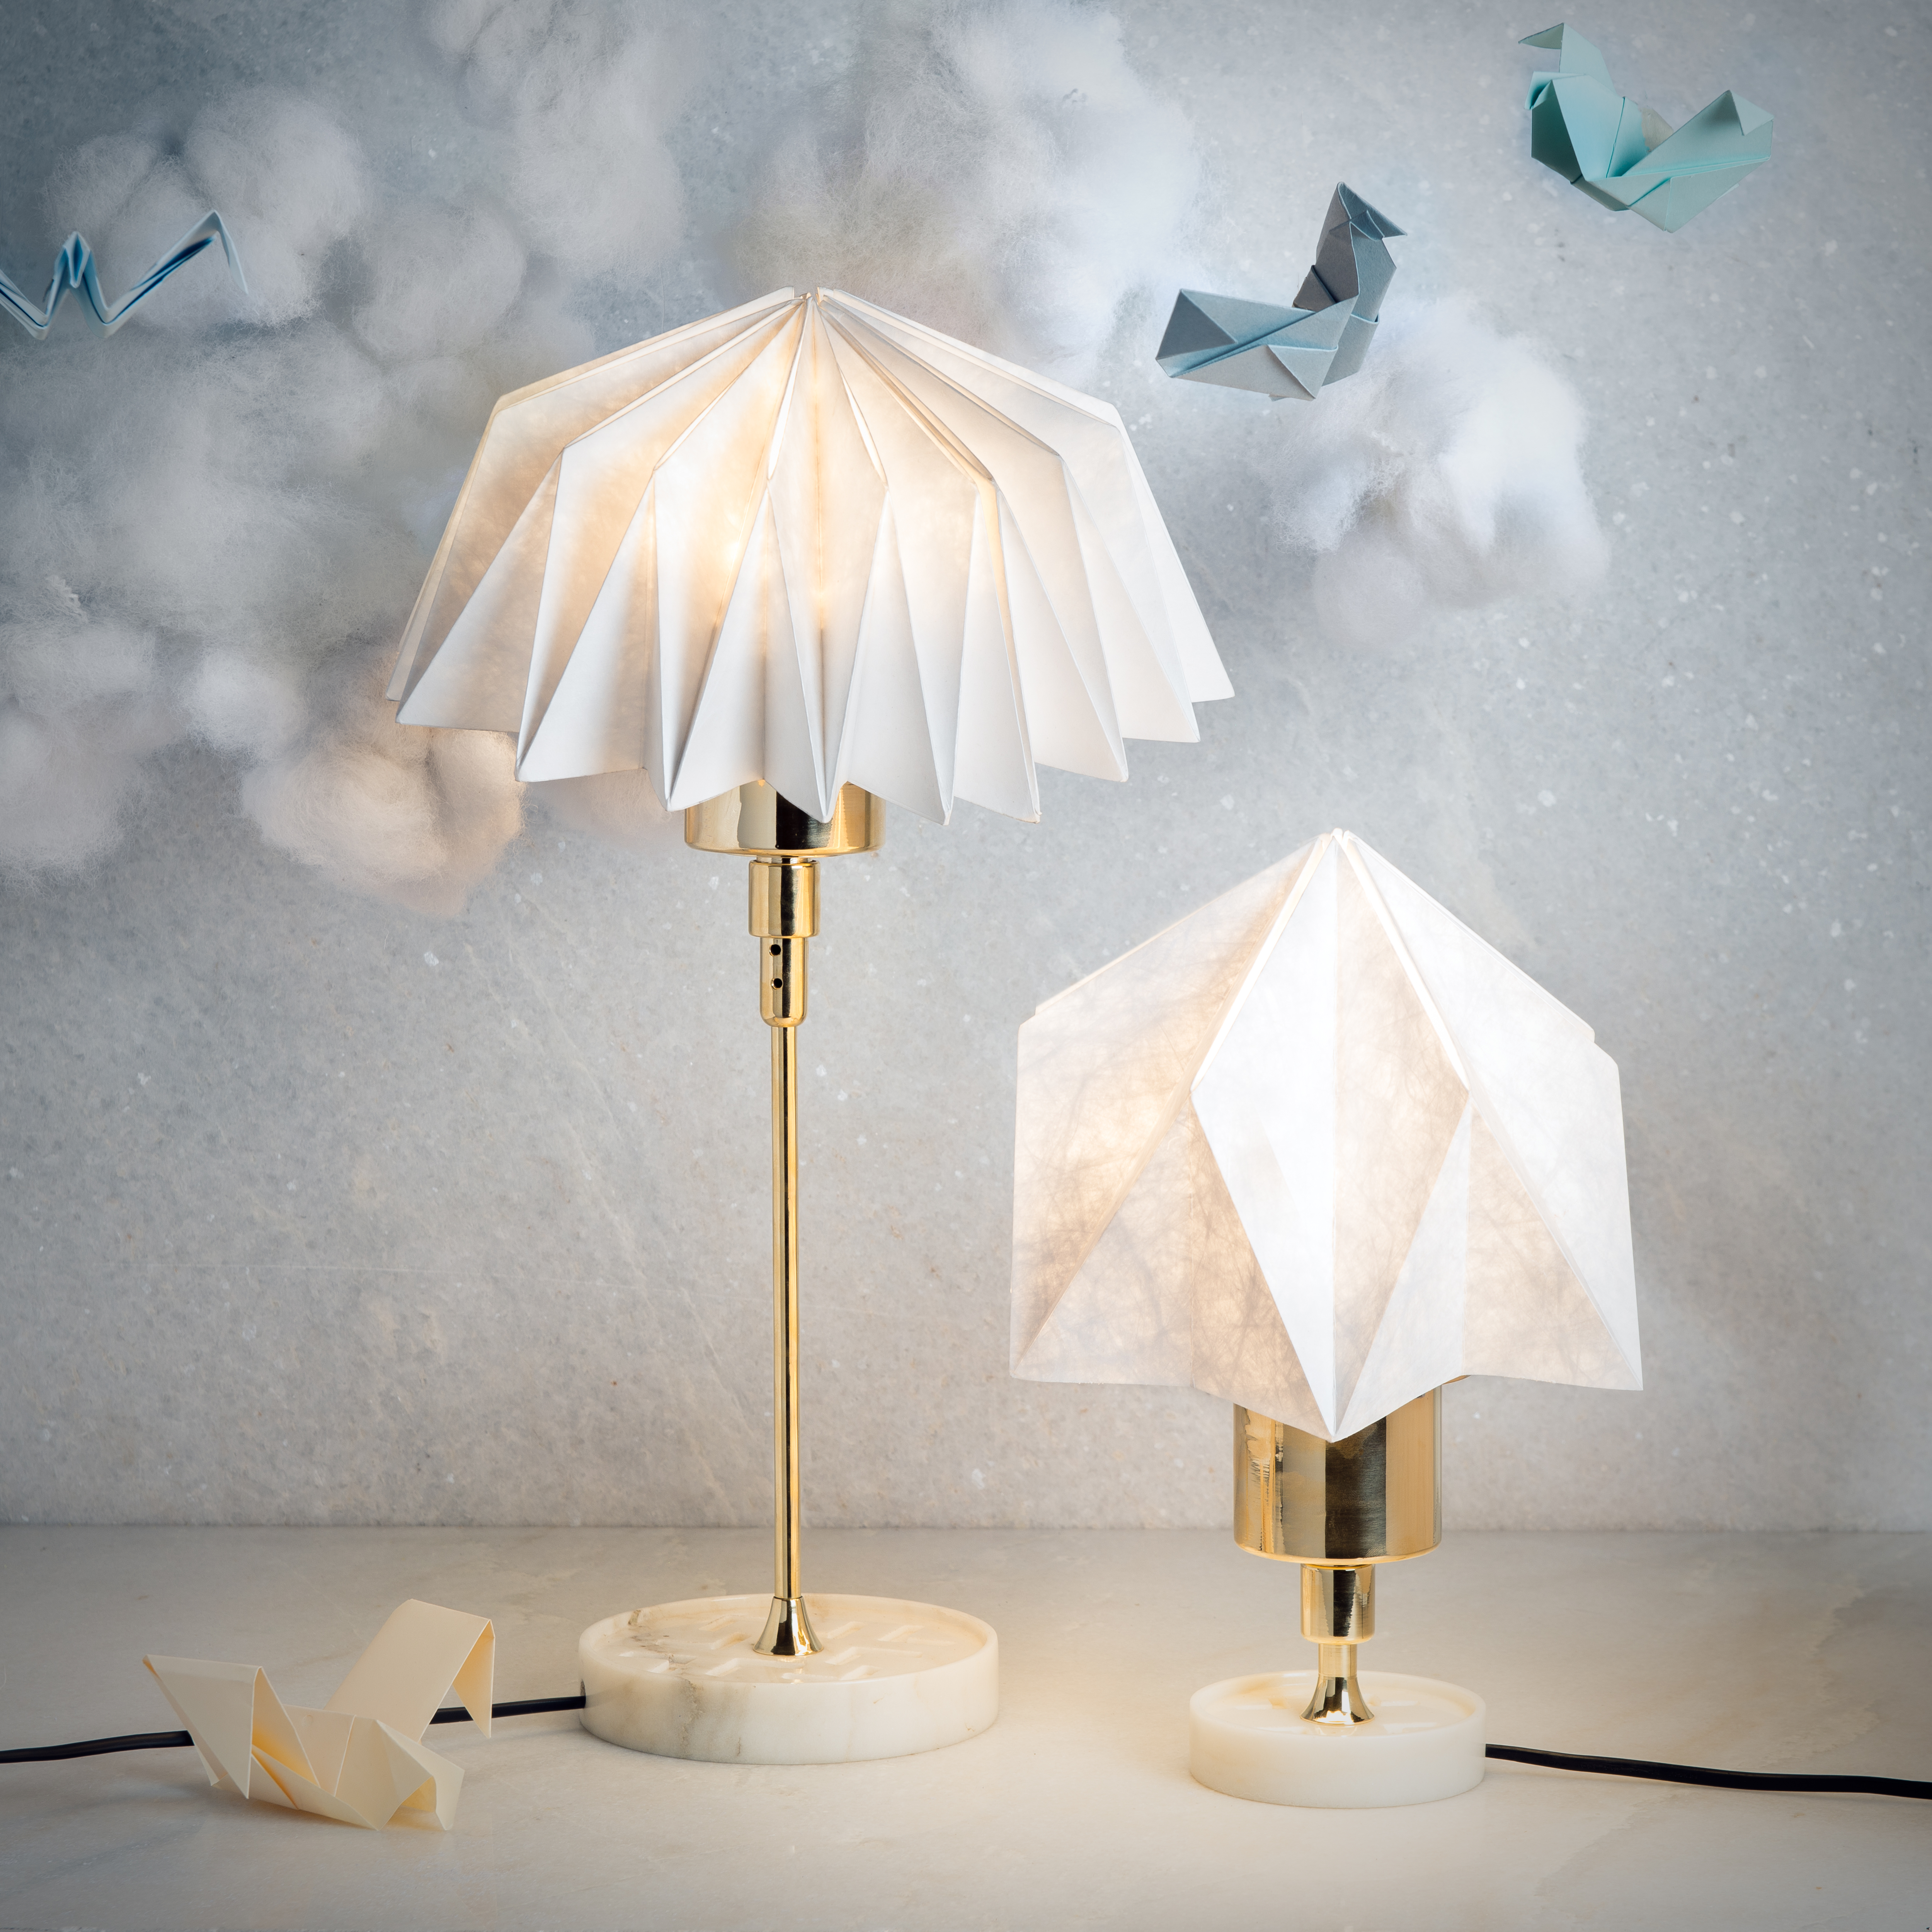 This Collection Includes Bedside Lamp Floor Table Pendant Hanging And Wall Inspired By Origami Which Is A Japanese Art Of